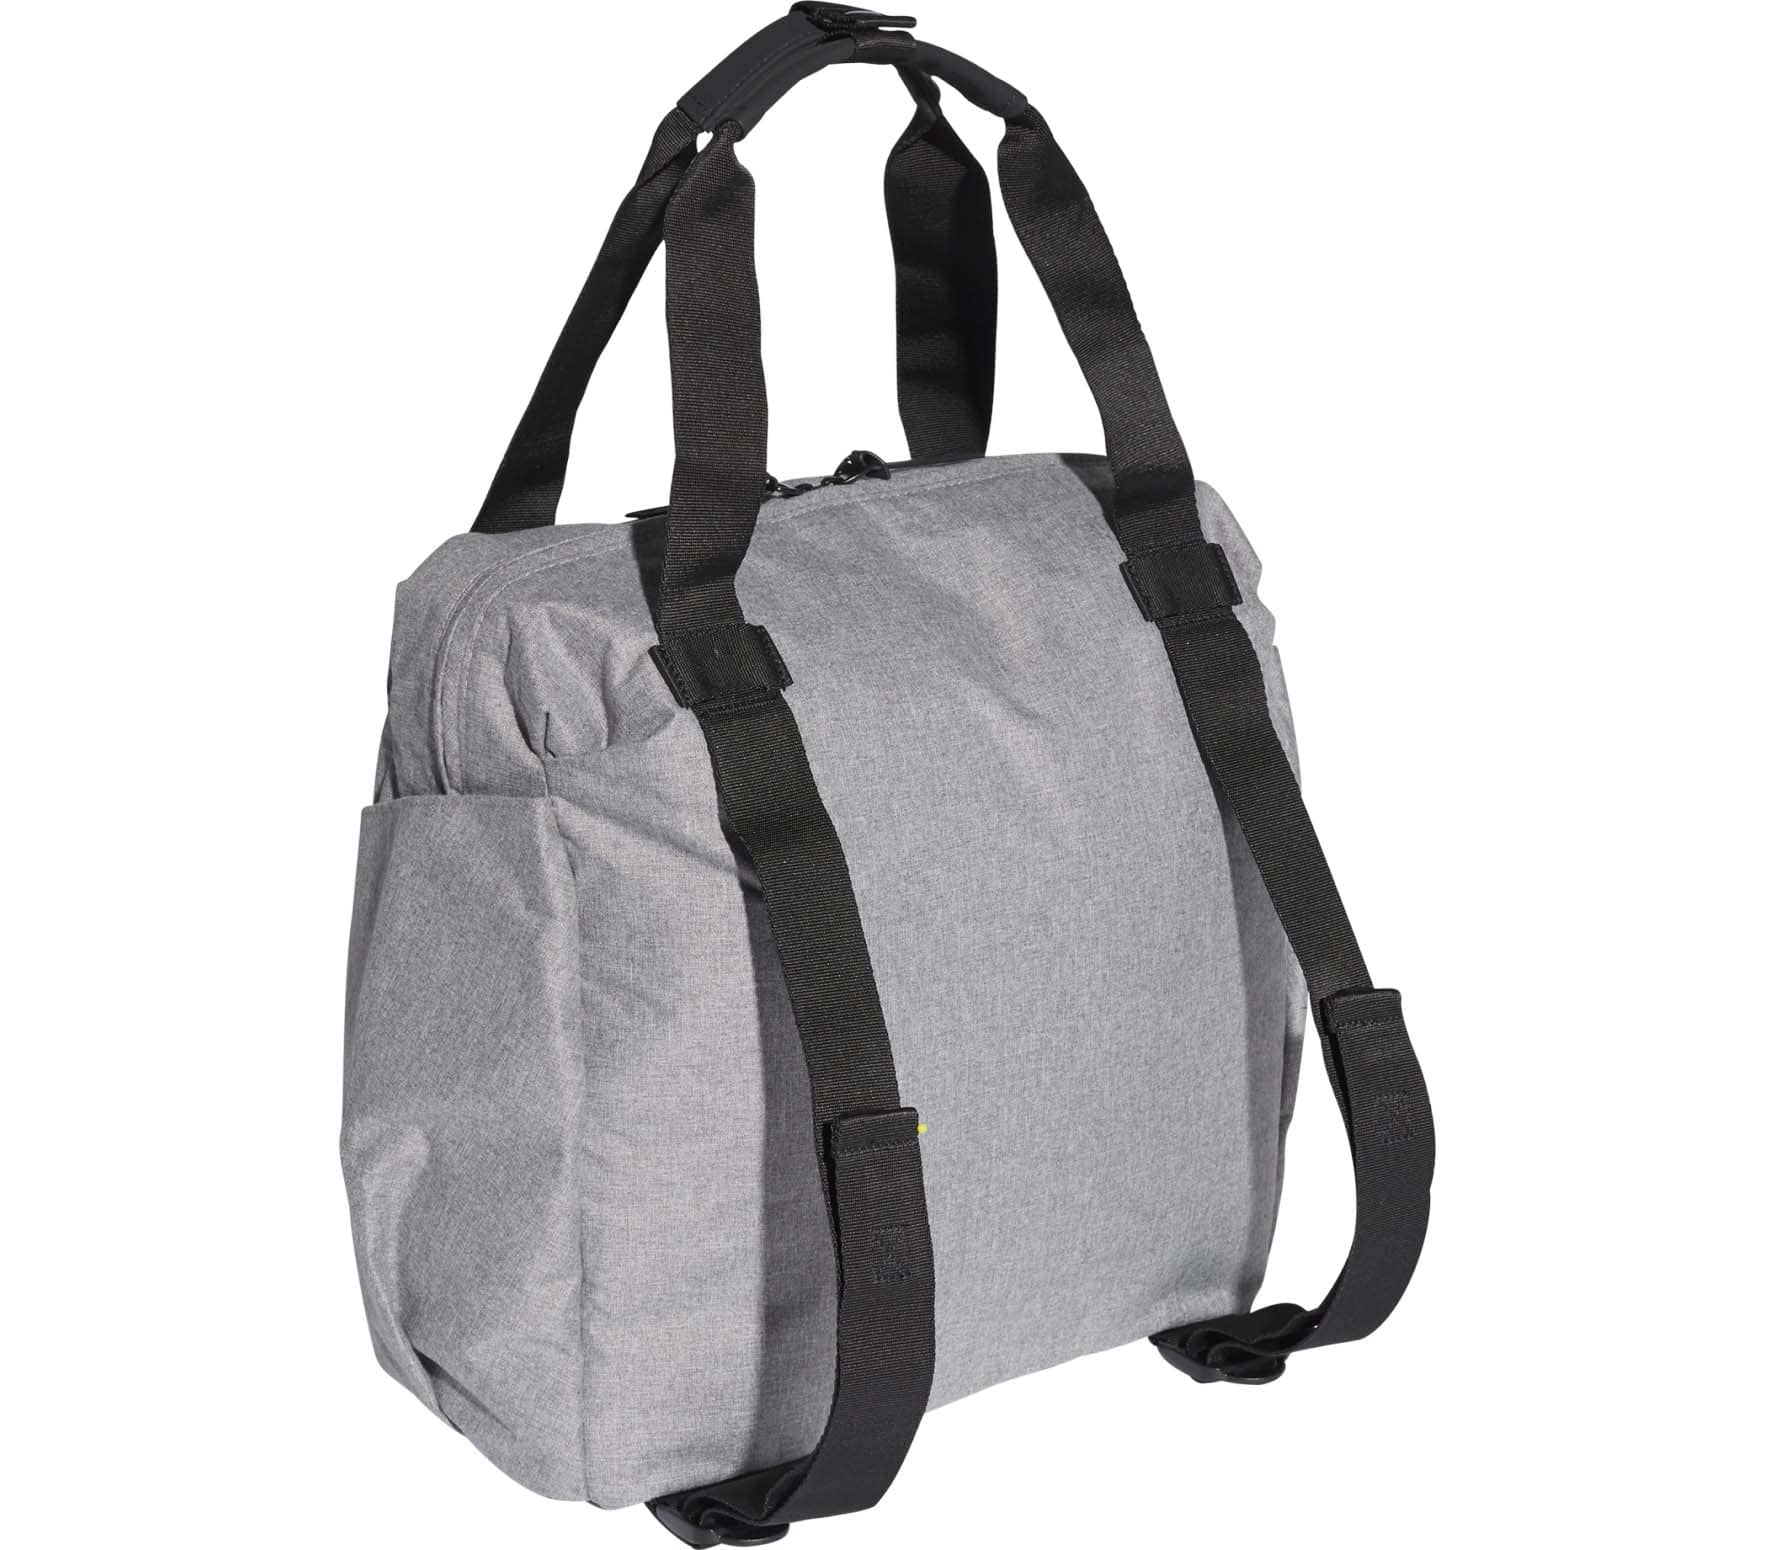 c1a32b6e2b7 adidas Performance - Id Tote Heathered women's training bag (grey ...